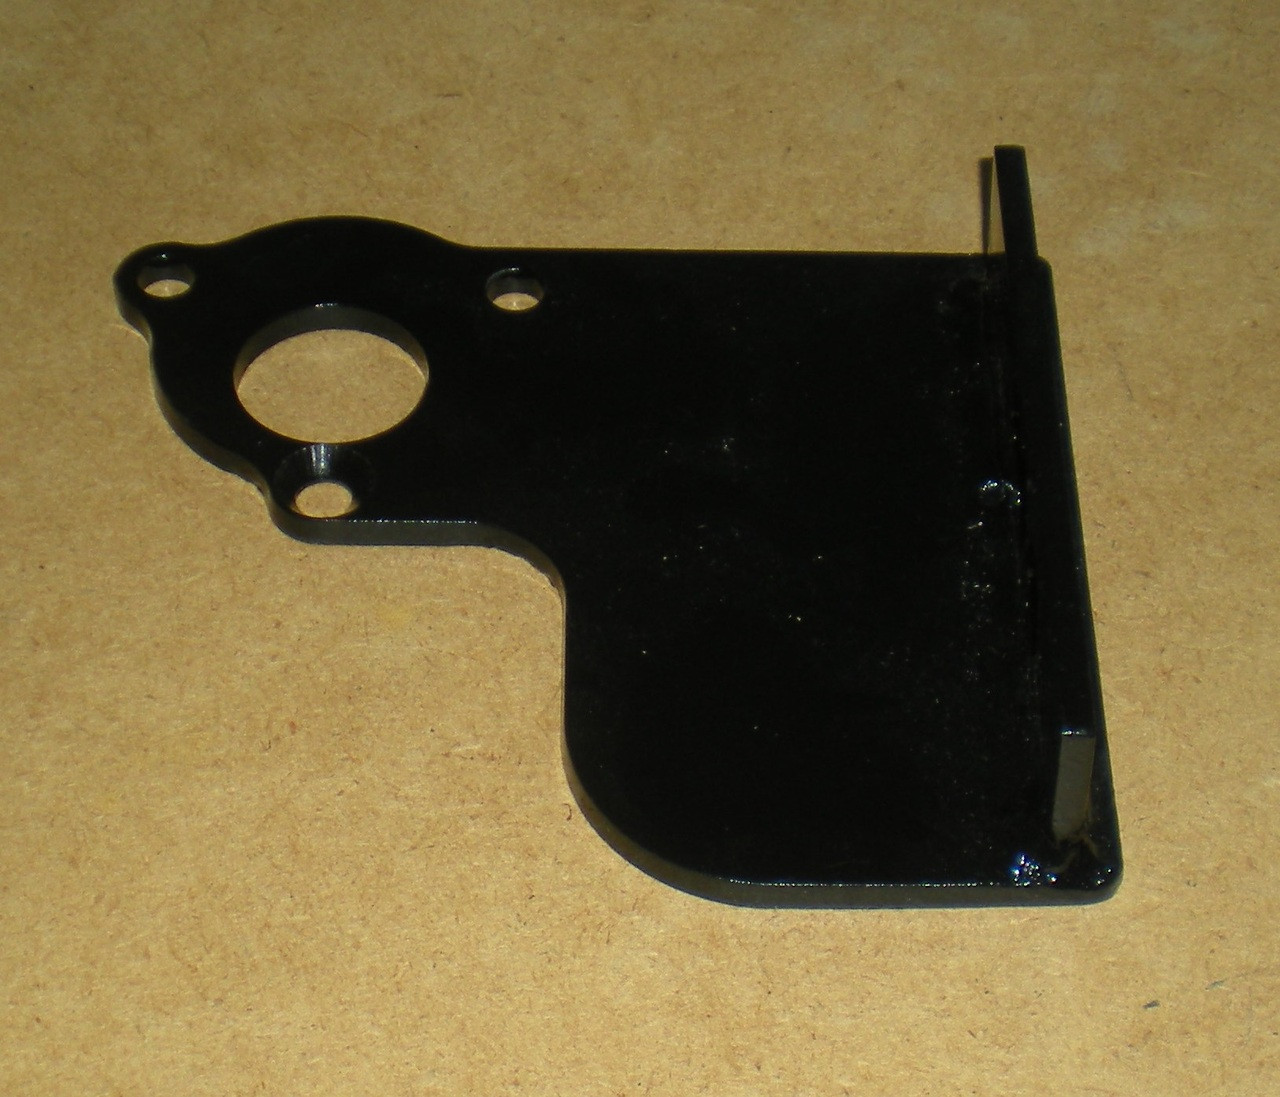 Transfer Case Cable Mounting Plate for the LT230